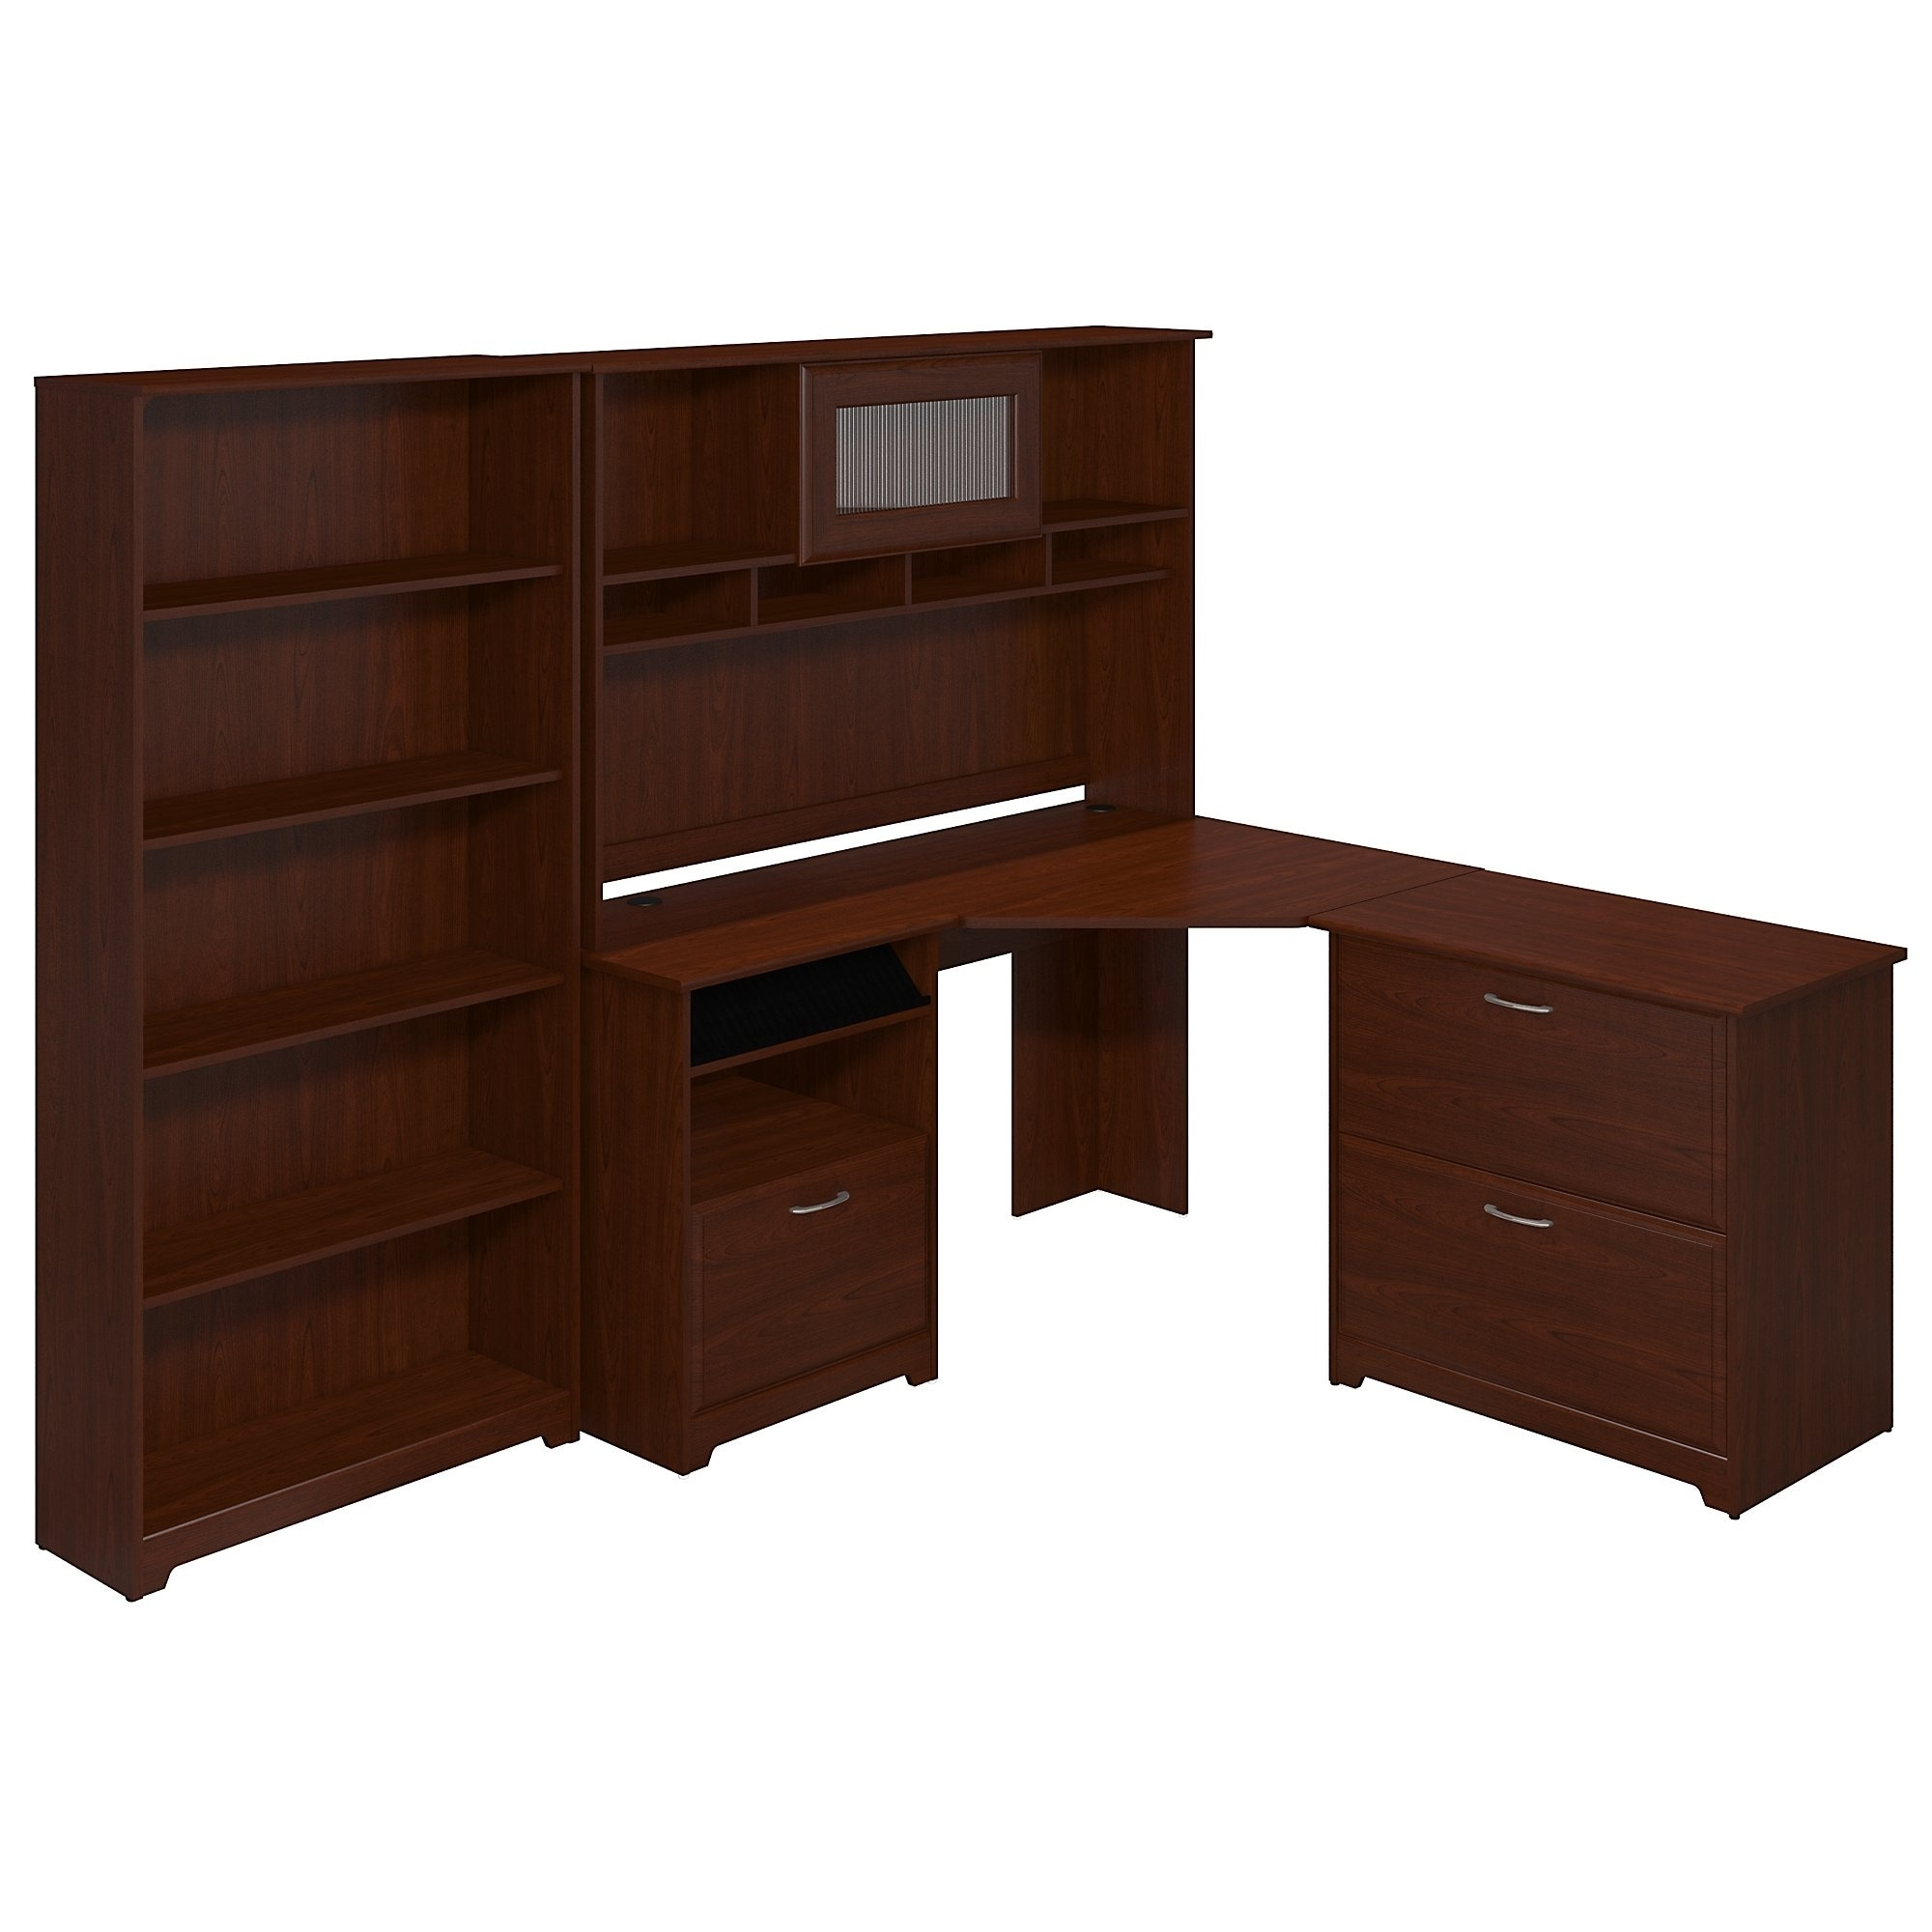 Good Bush Furniture Cabot Corner Desk Office Suite In